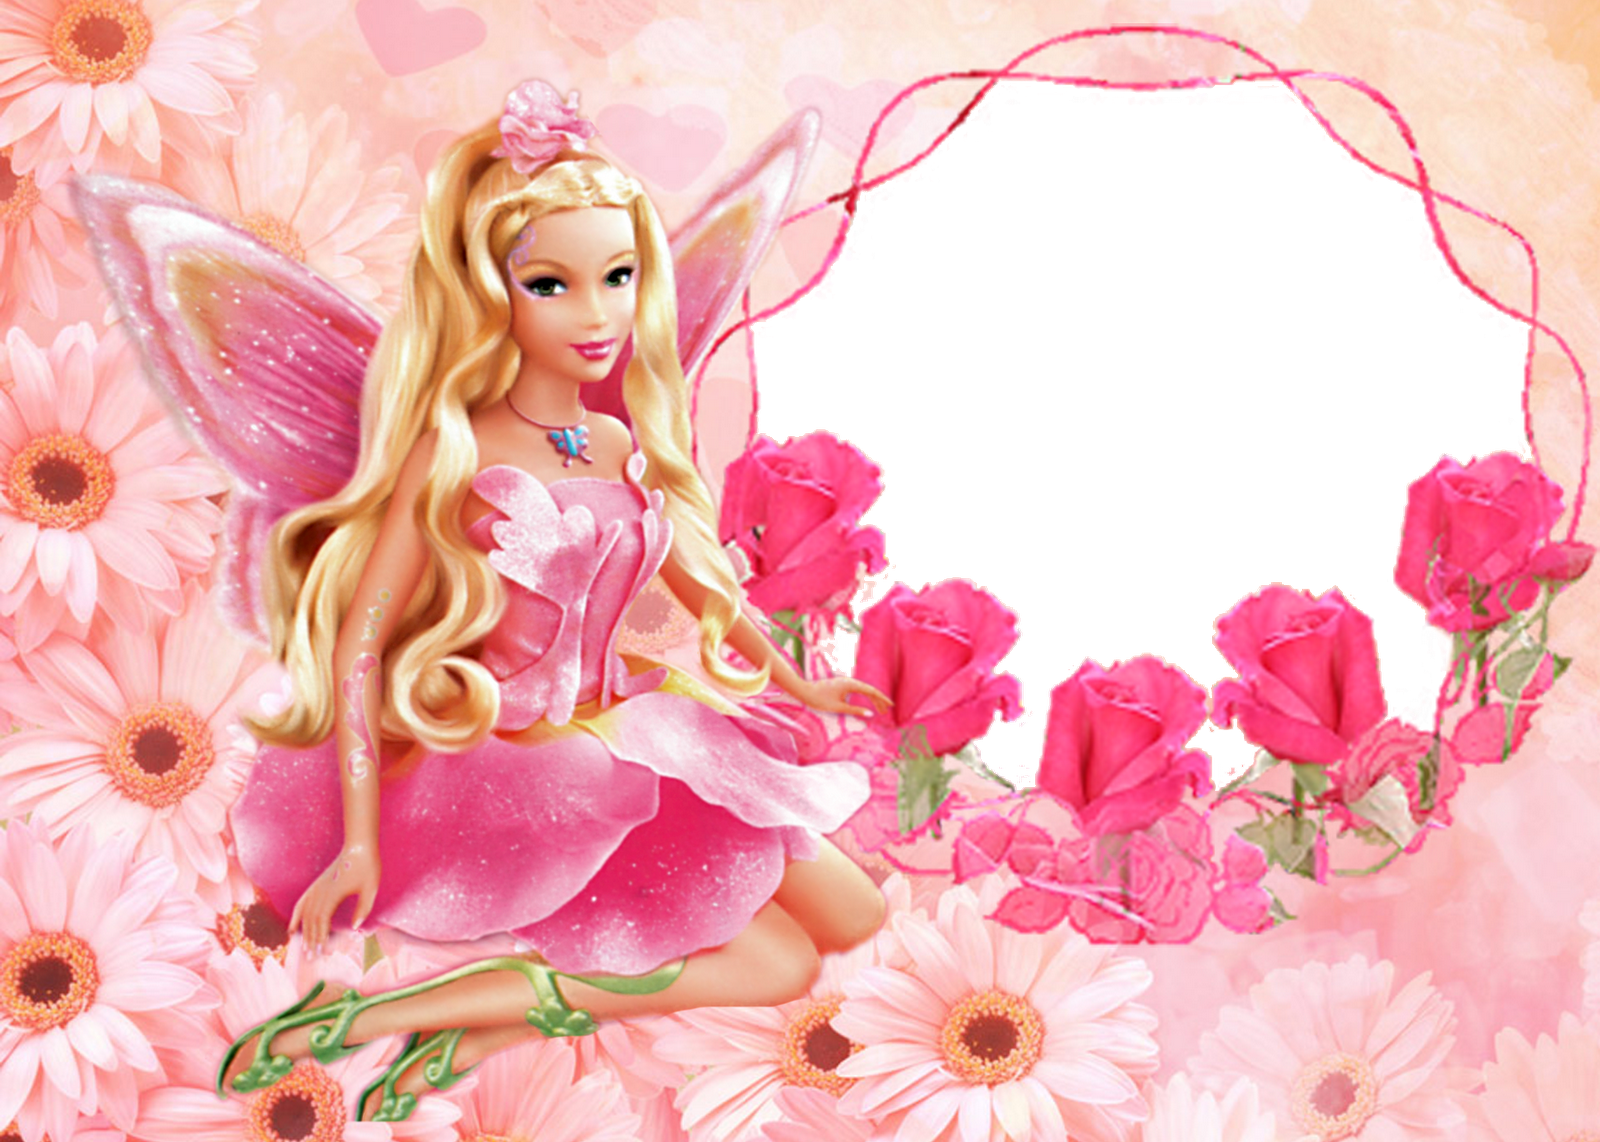 Barbie Wallpaper High Quality HD 2737 Wallpaper High